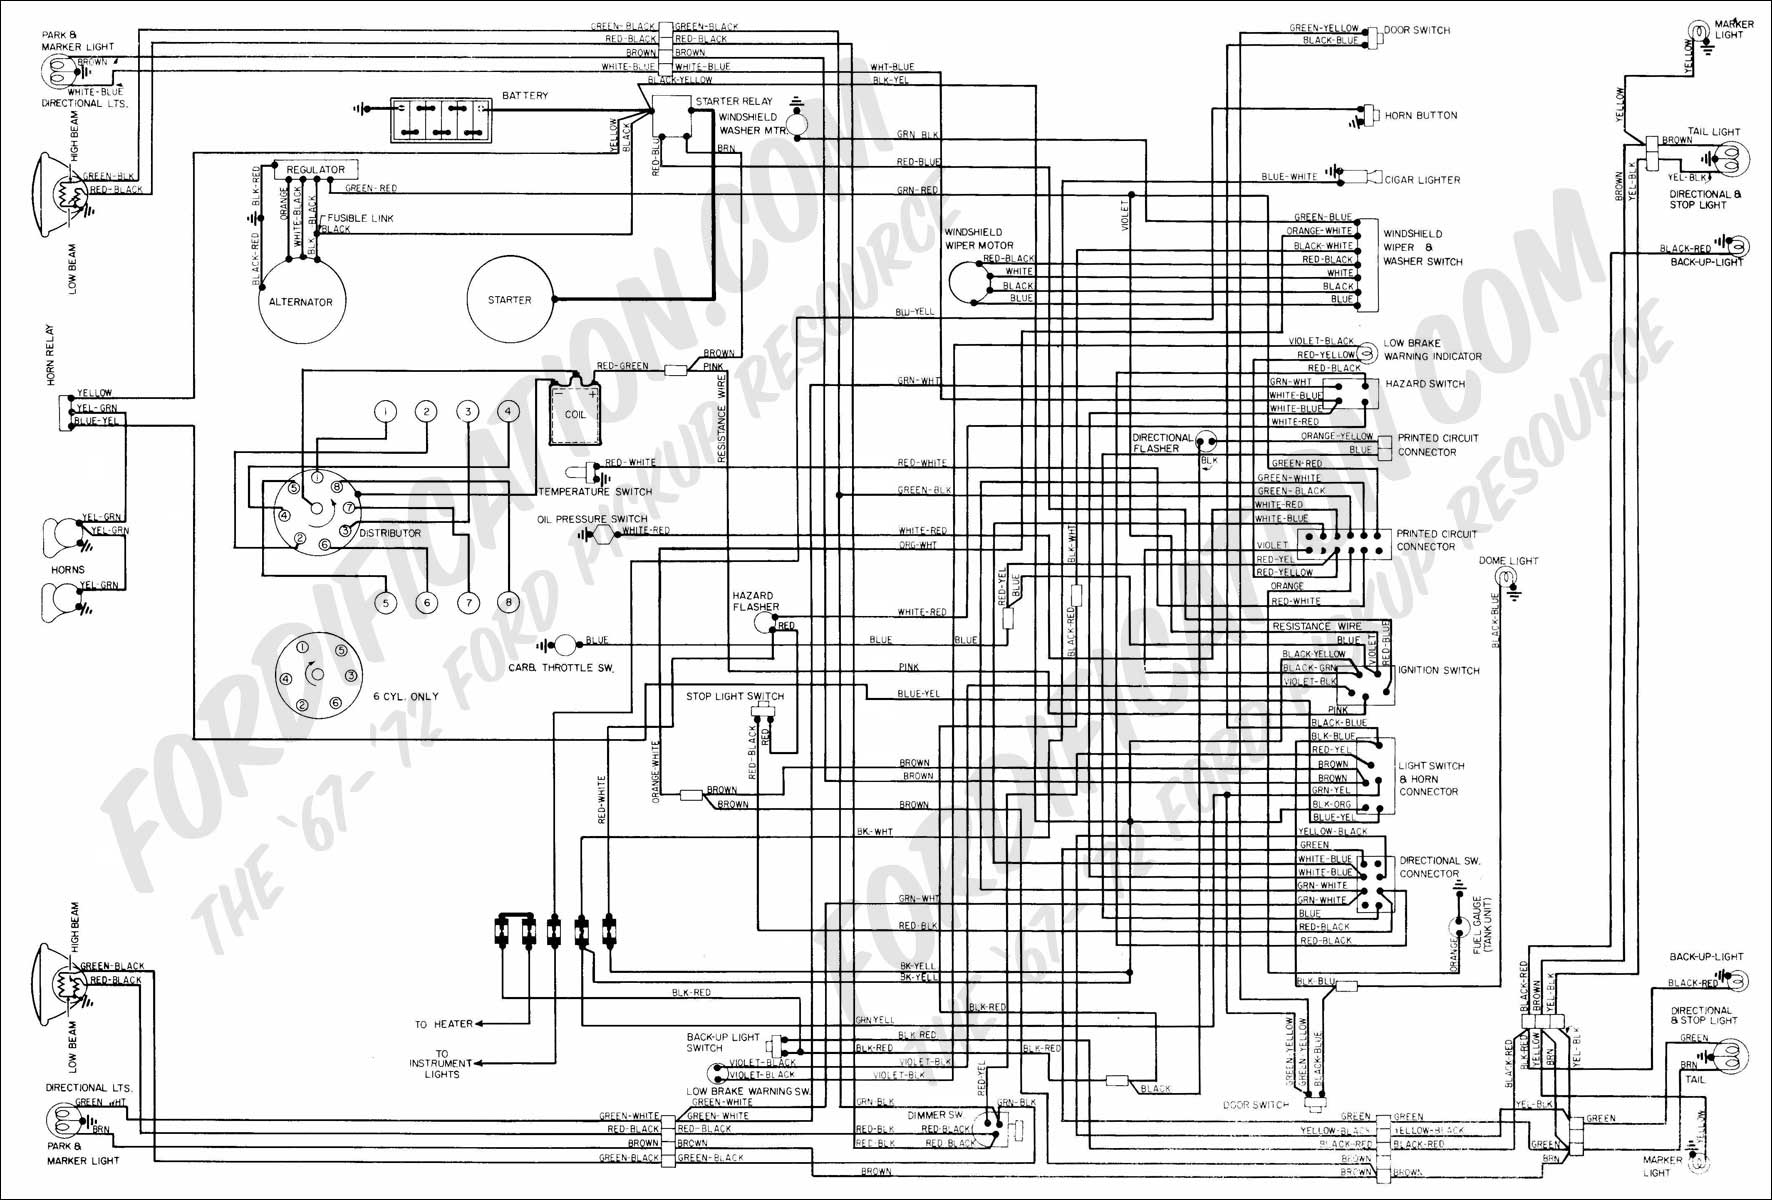 1971 Chevelle Dash Wiring Diagram. Wiring. Wiring Diagrams Instructions